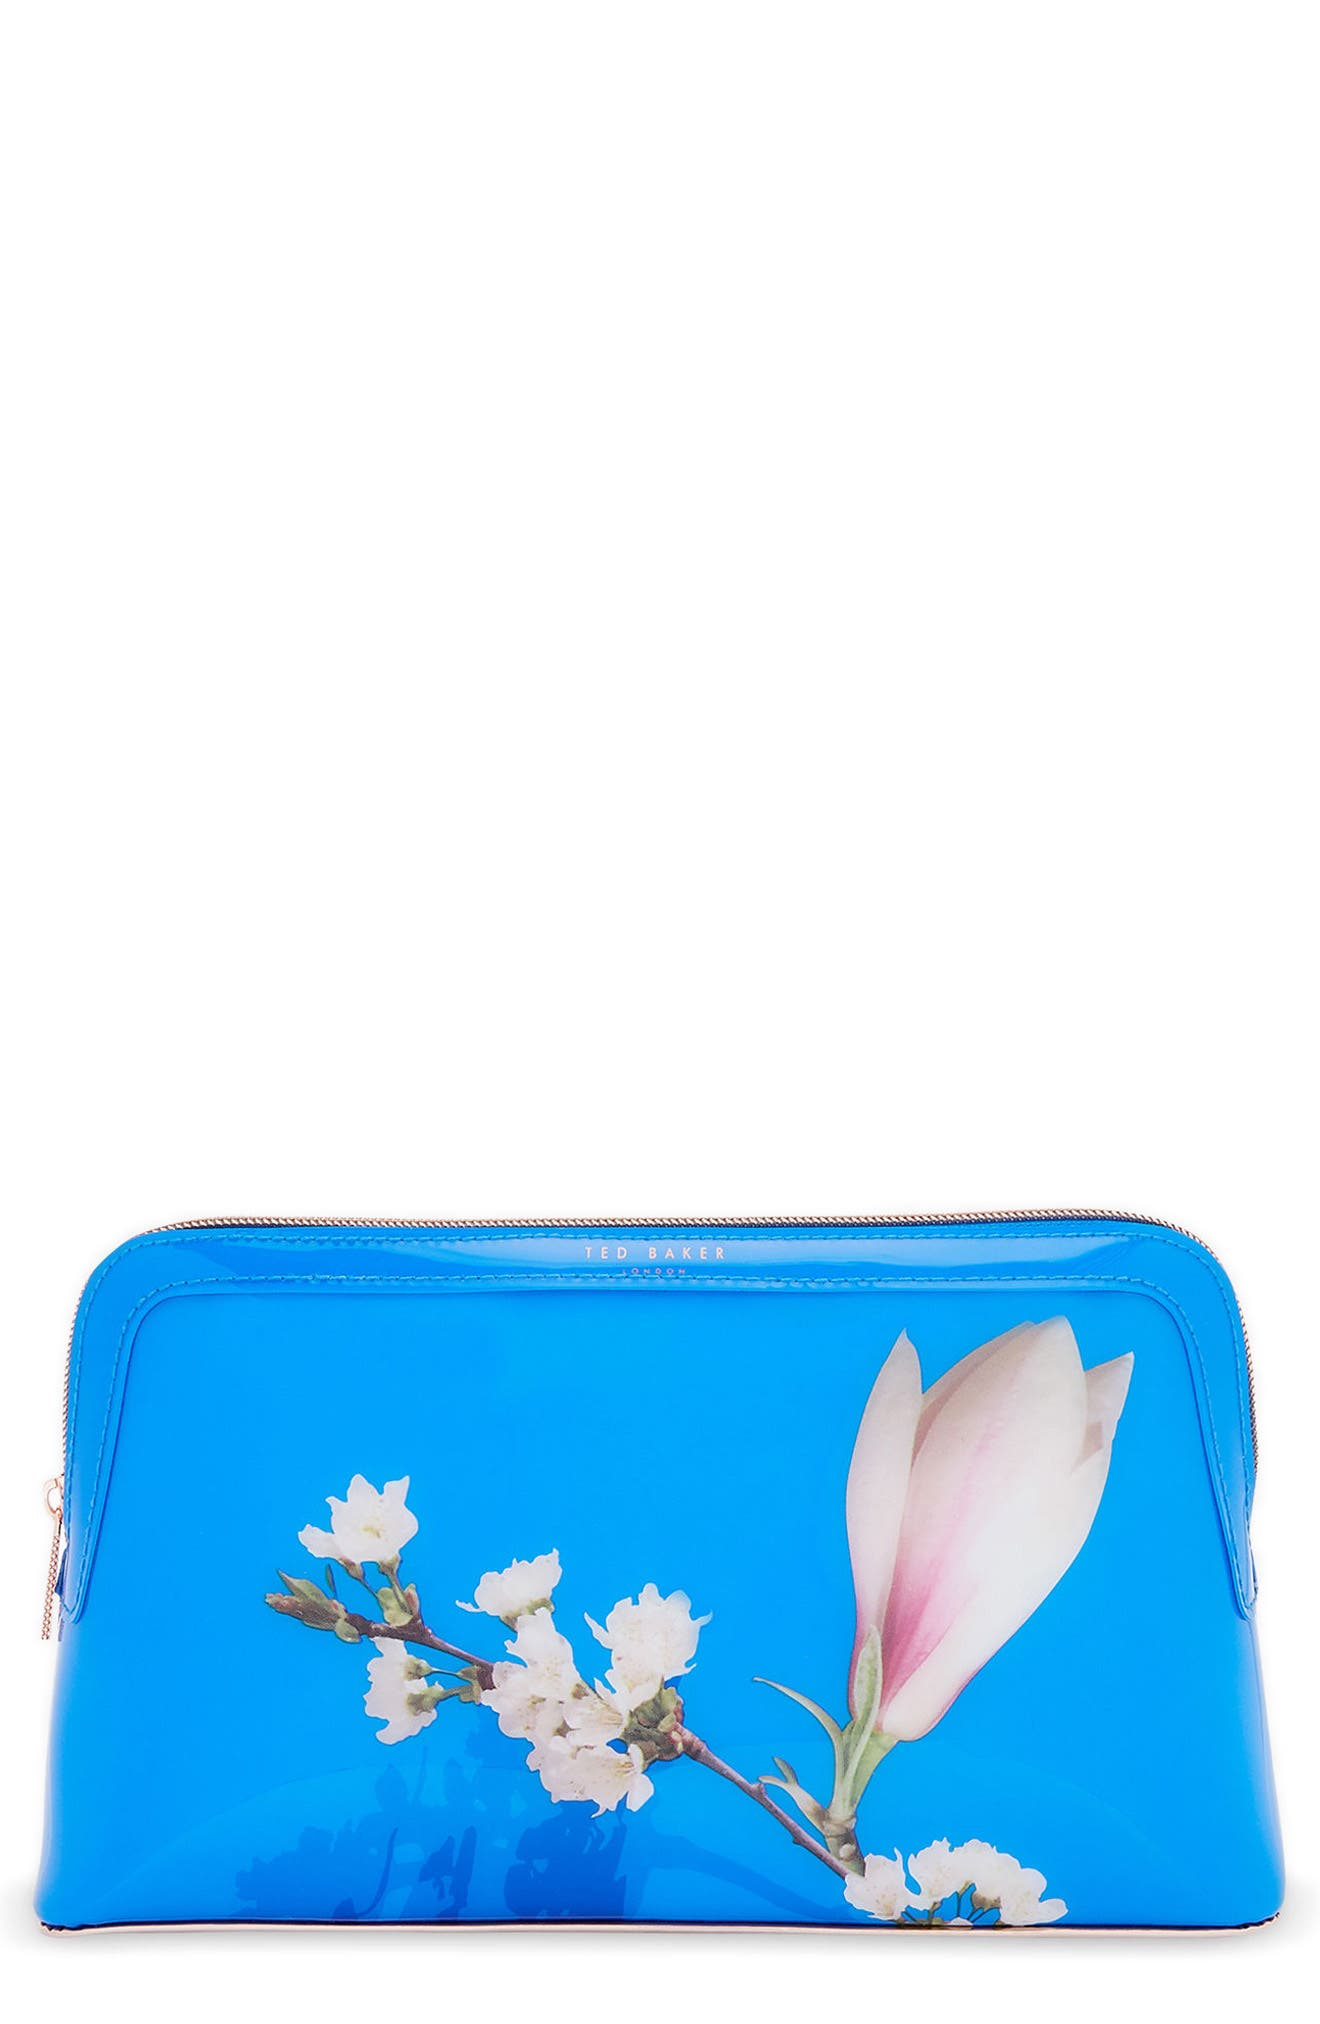 Daisyy – Harmony Wash Bag,                             Main thumbnail 1, color,                             430